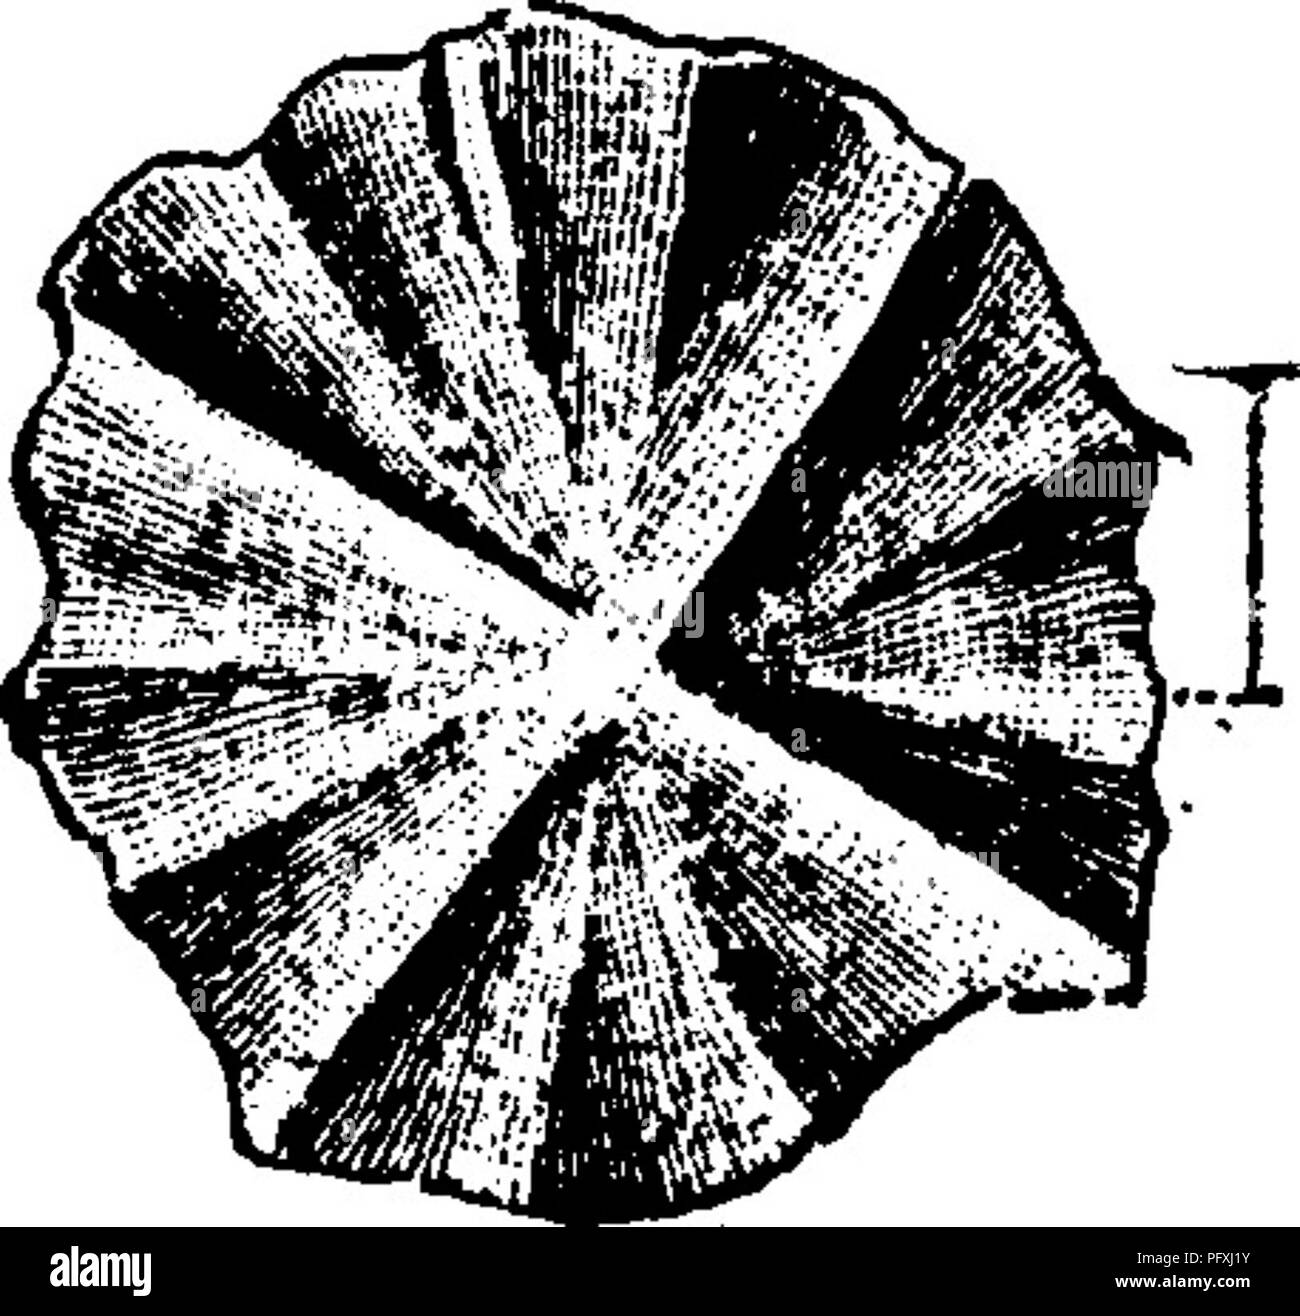 . A dictionary of the fossils of Pennsylvania and neighboring states named in the reports and catalogues of the survey ... Paleontology. Entolium aviculatum. {Pecten aviculatus^ Swallow, Xin-i5Sfe*rf^ /^^S^ fi' Trans. Acad. Sc. St. Louis, 1858 ;—Meek, Nebraska U. S. Survey, 1872, plate 9.) Col- lett's Indiana Rt. of 1882, page 142, plate 28, fig. 7, s-vw^ieeaxa-jj^/ natural size^loii valve; fig. Ij^^^^^^i^lg^p -^is^^^jjjg[^^^i^j  g^ inside of left valve, show- ing hinge, etc., many parts of Indiana and elsewhere, Goal measures^ XIII-XV. Eocystites primsevus. (Billings, 1868. Dawson's Acad. t C - Stock Image